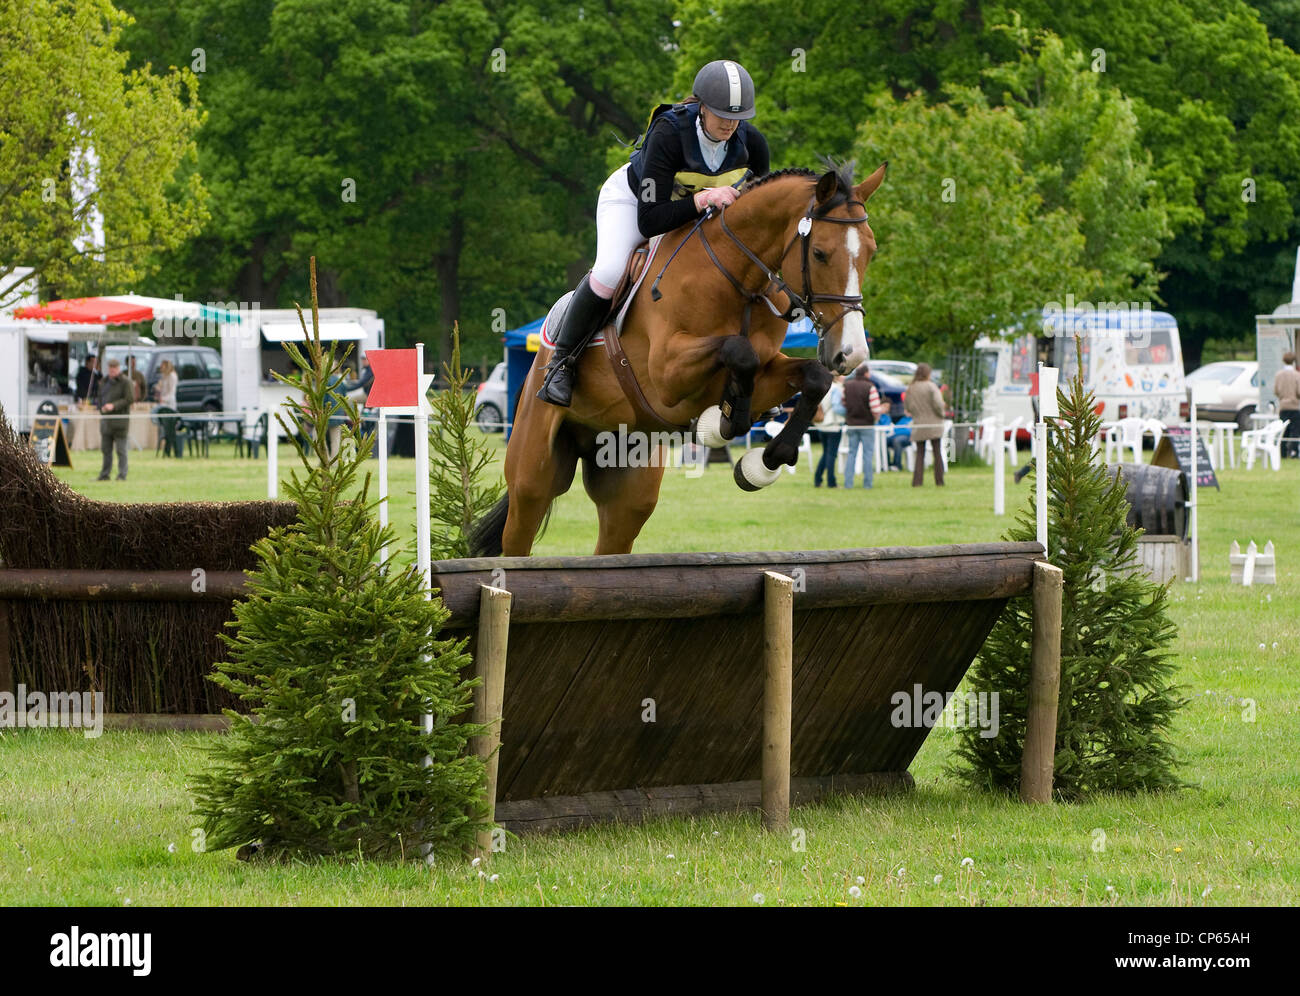 eventing at houghton hall, norfolk, england - Stock Image